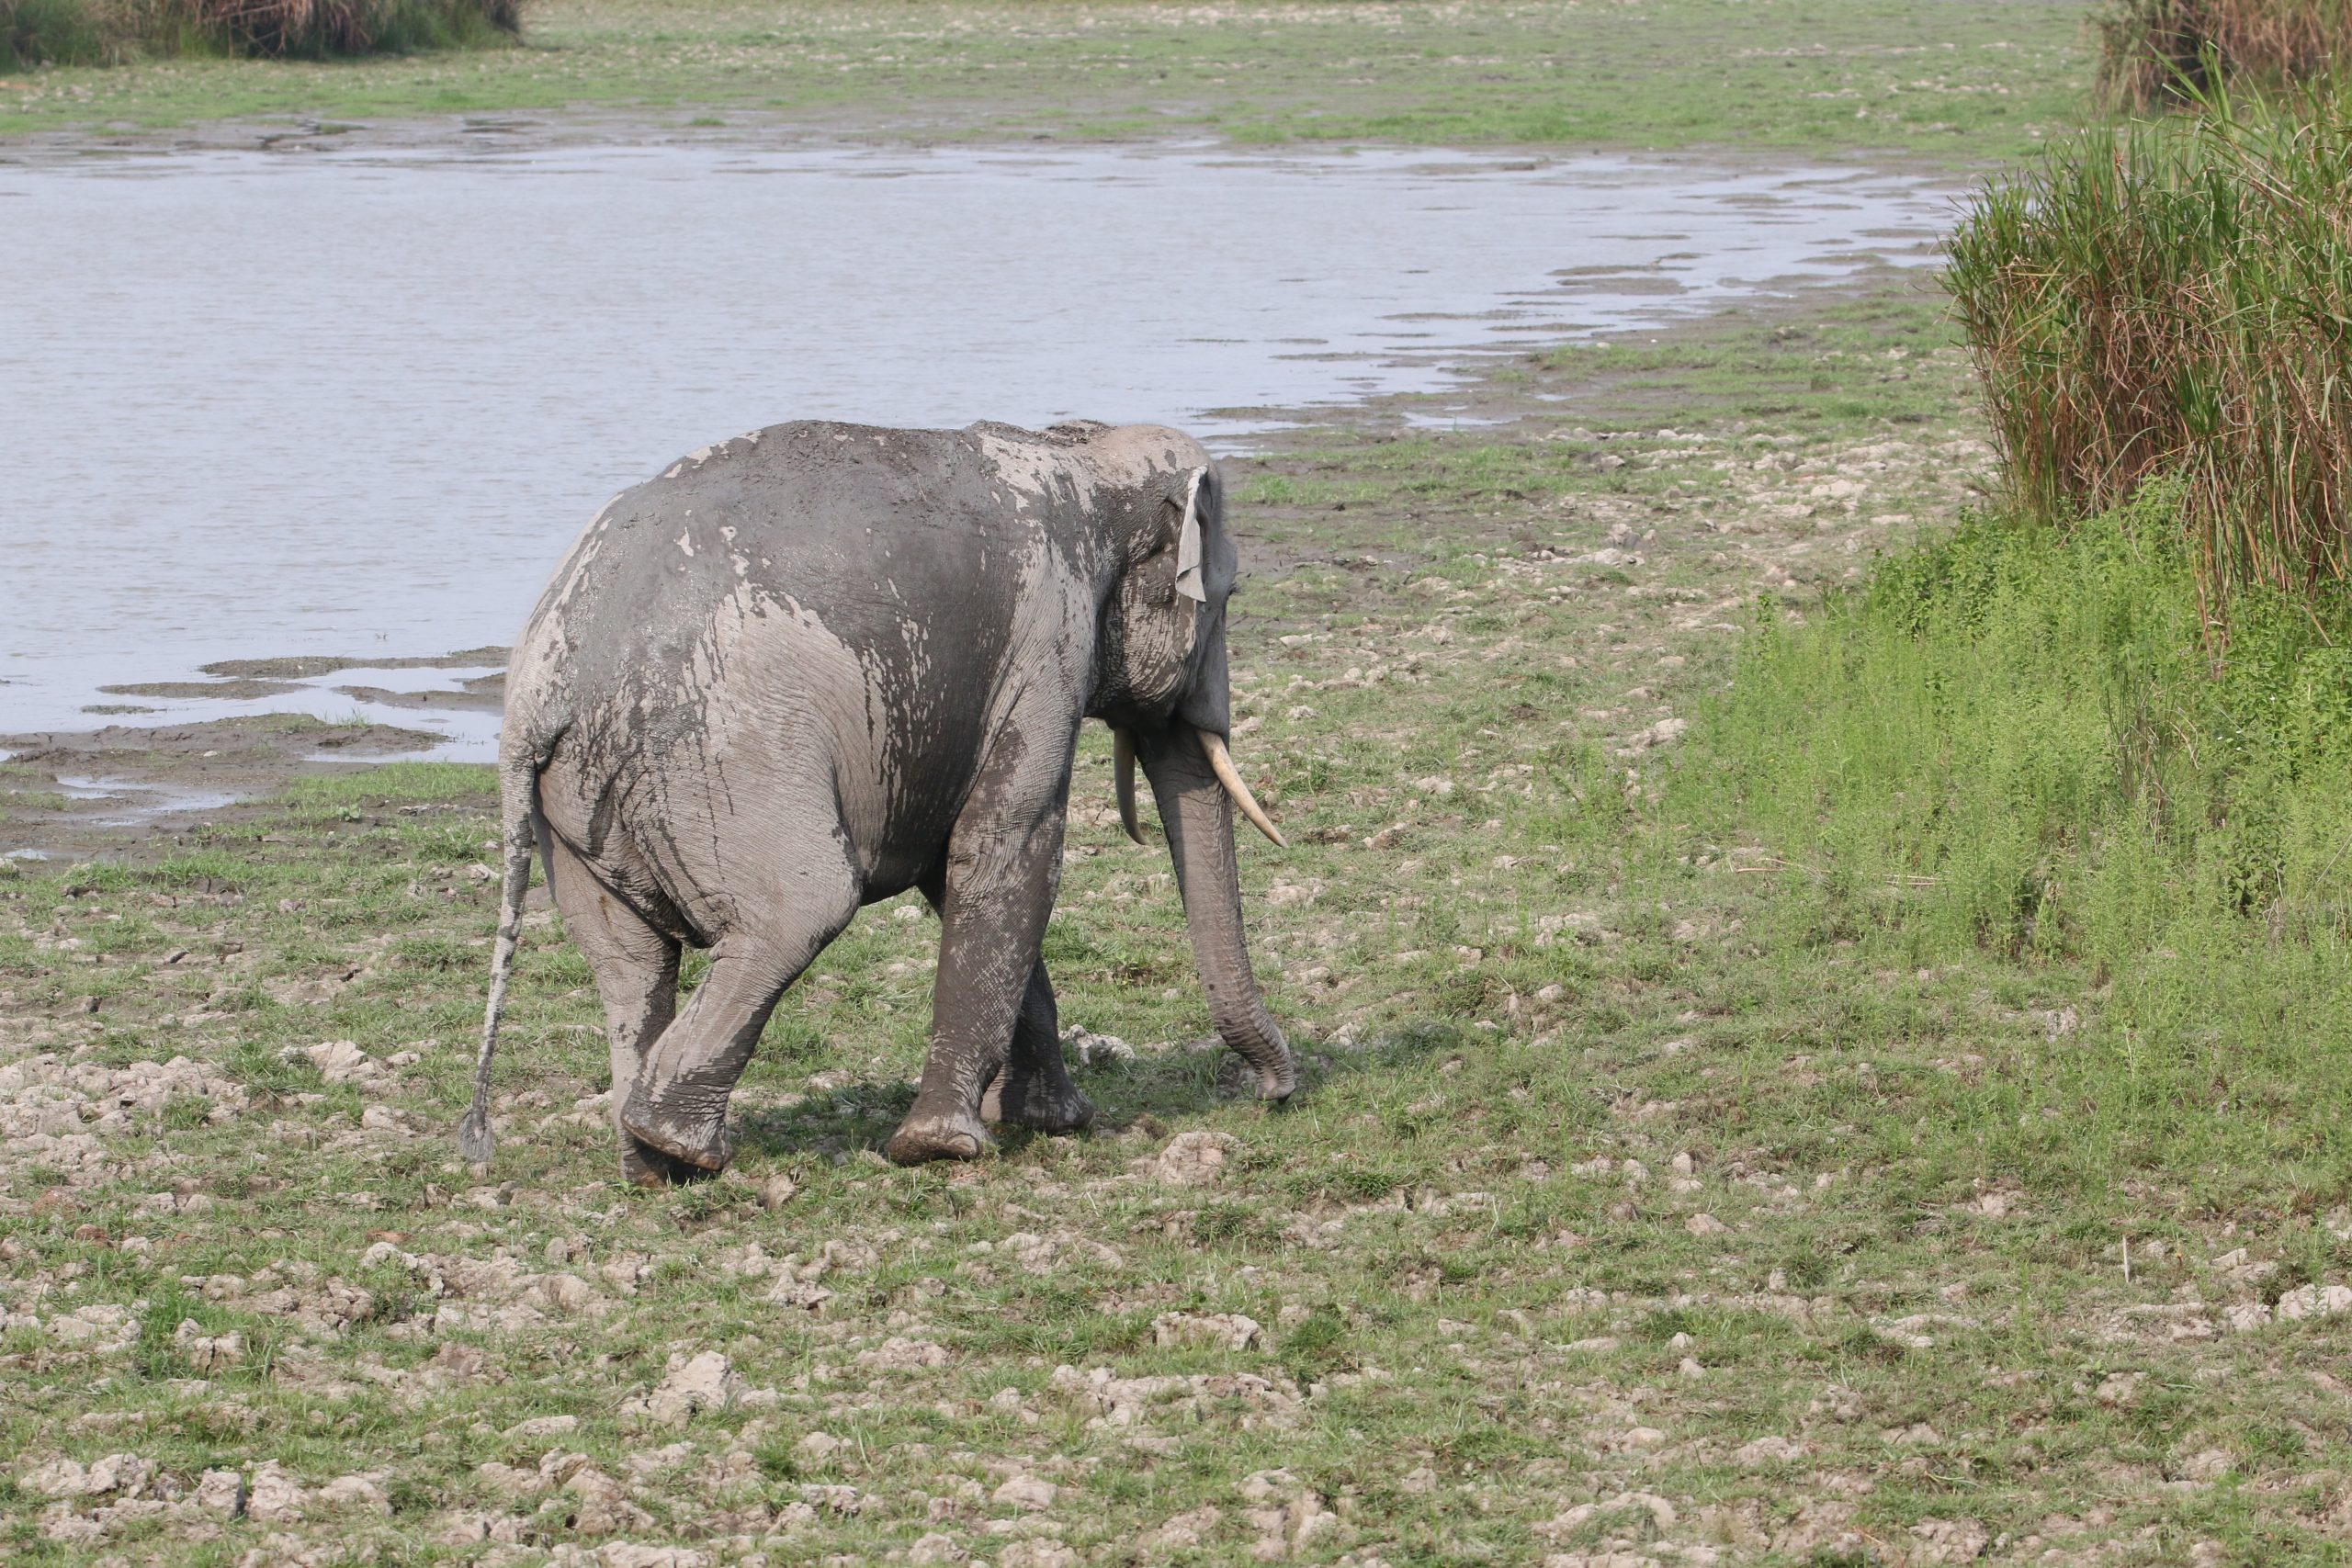 An elephant near a pond